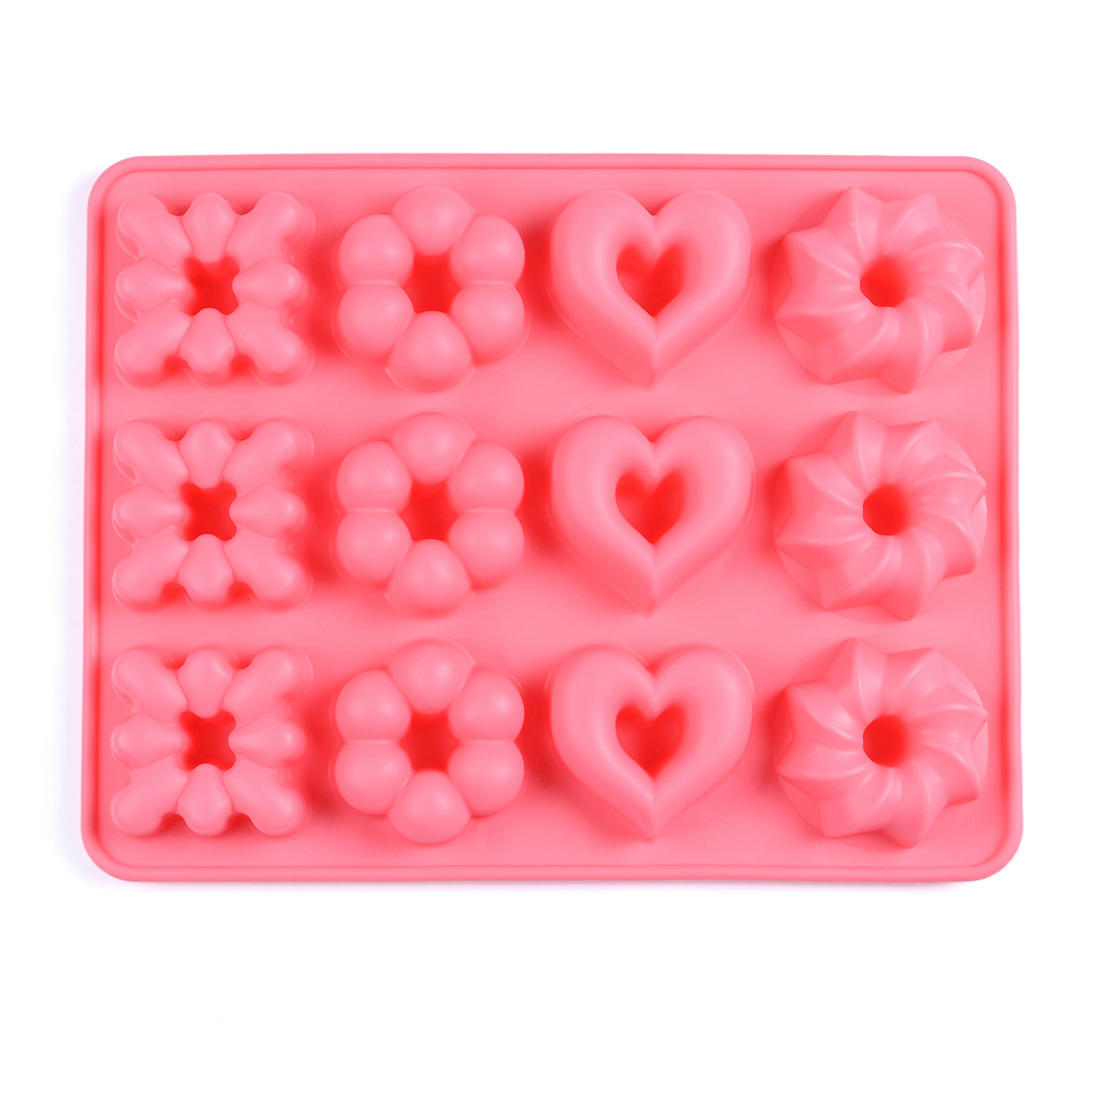 Non stick flower  shape silicone cookies mold and biscuits mold fondant cake mould